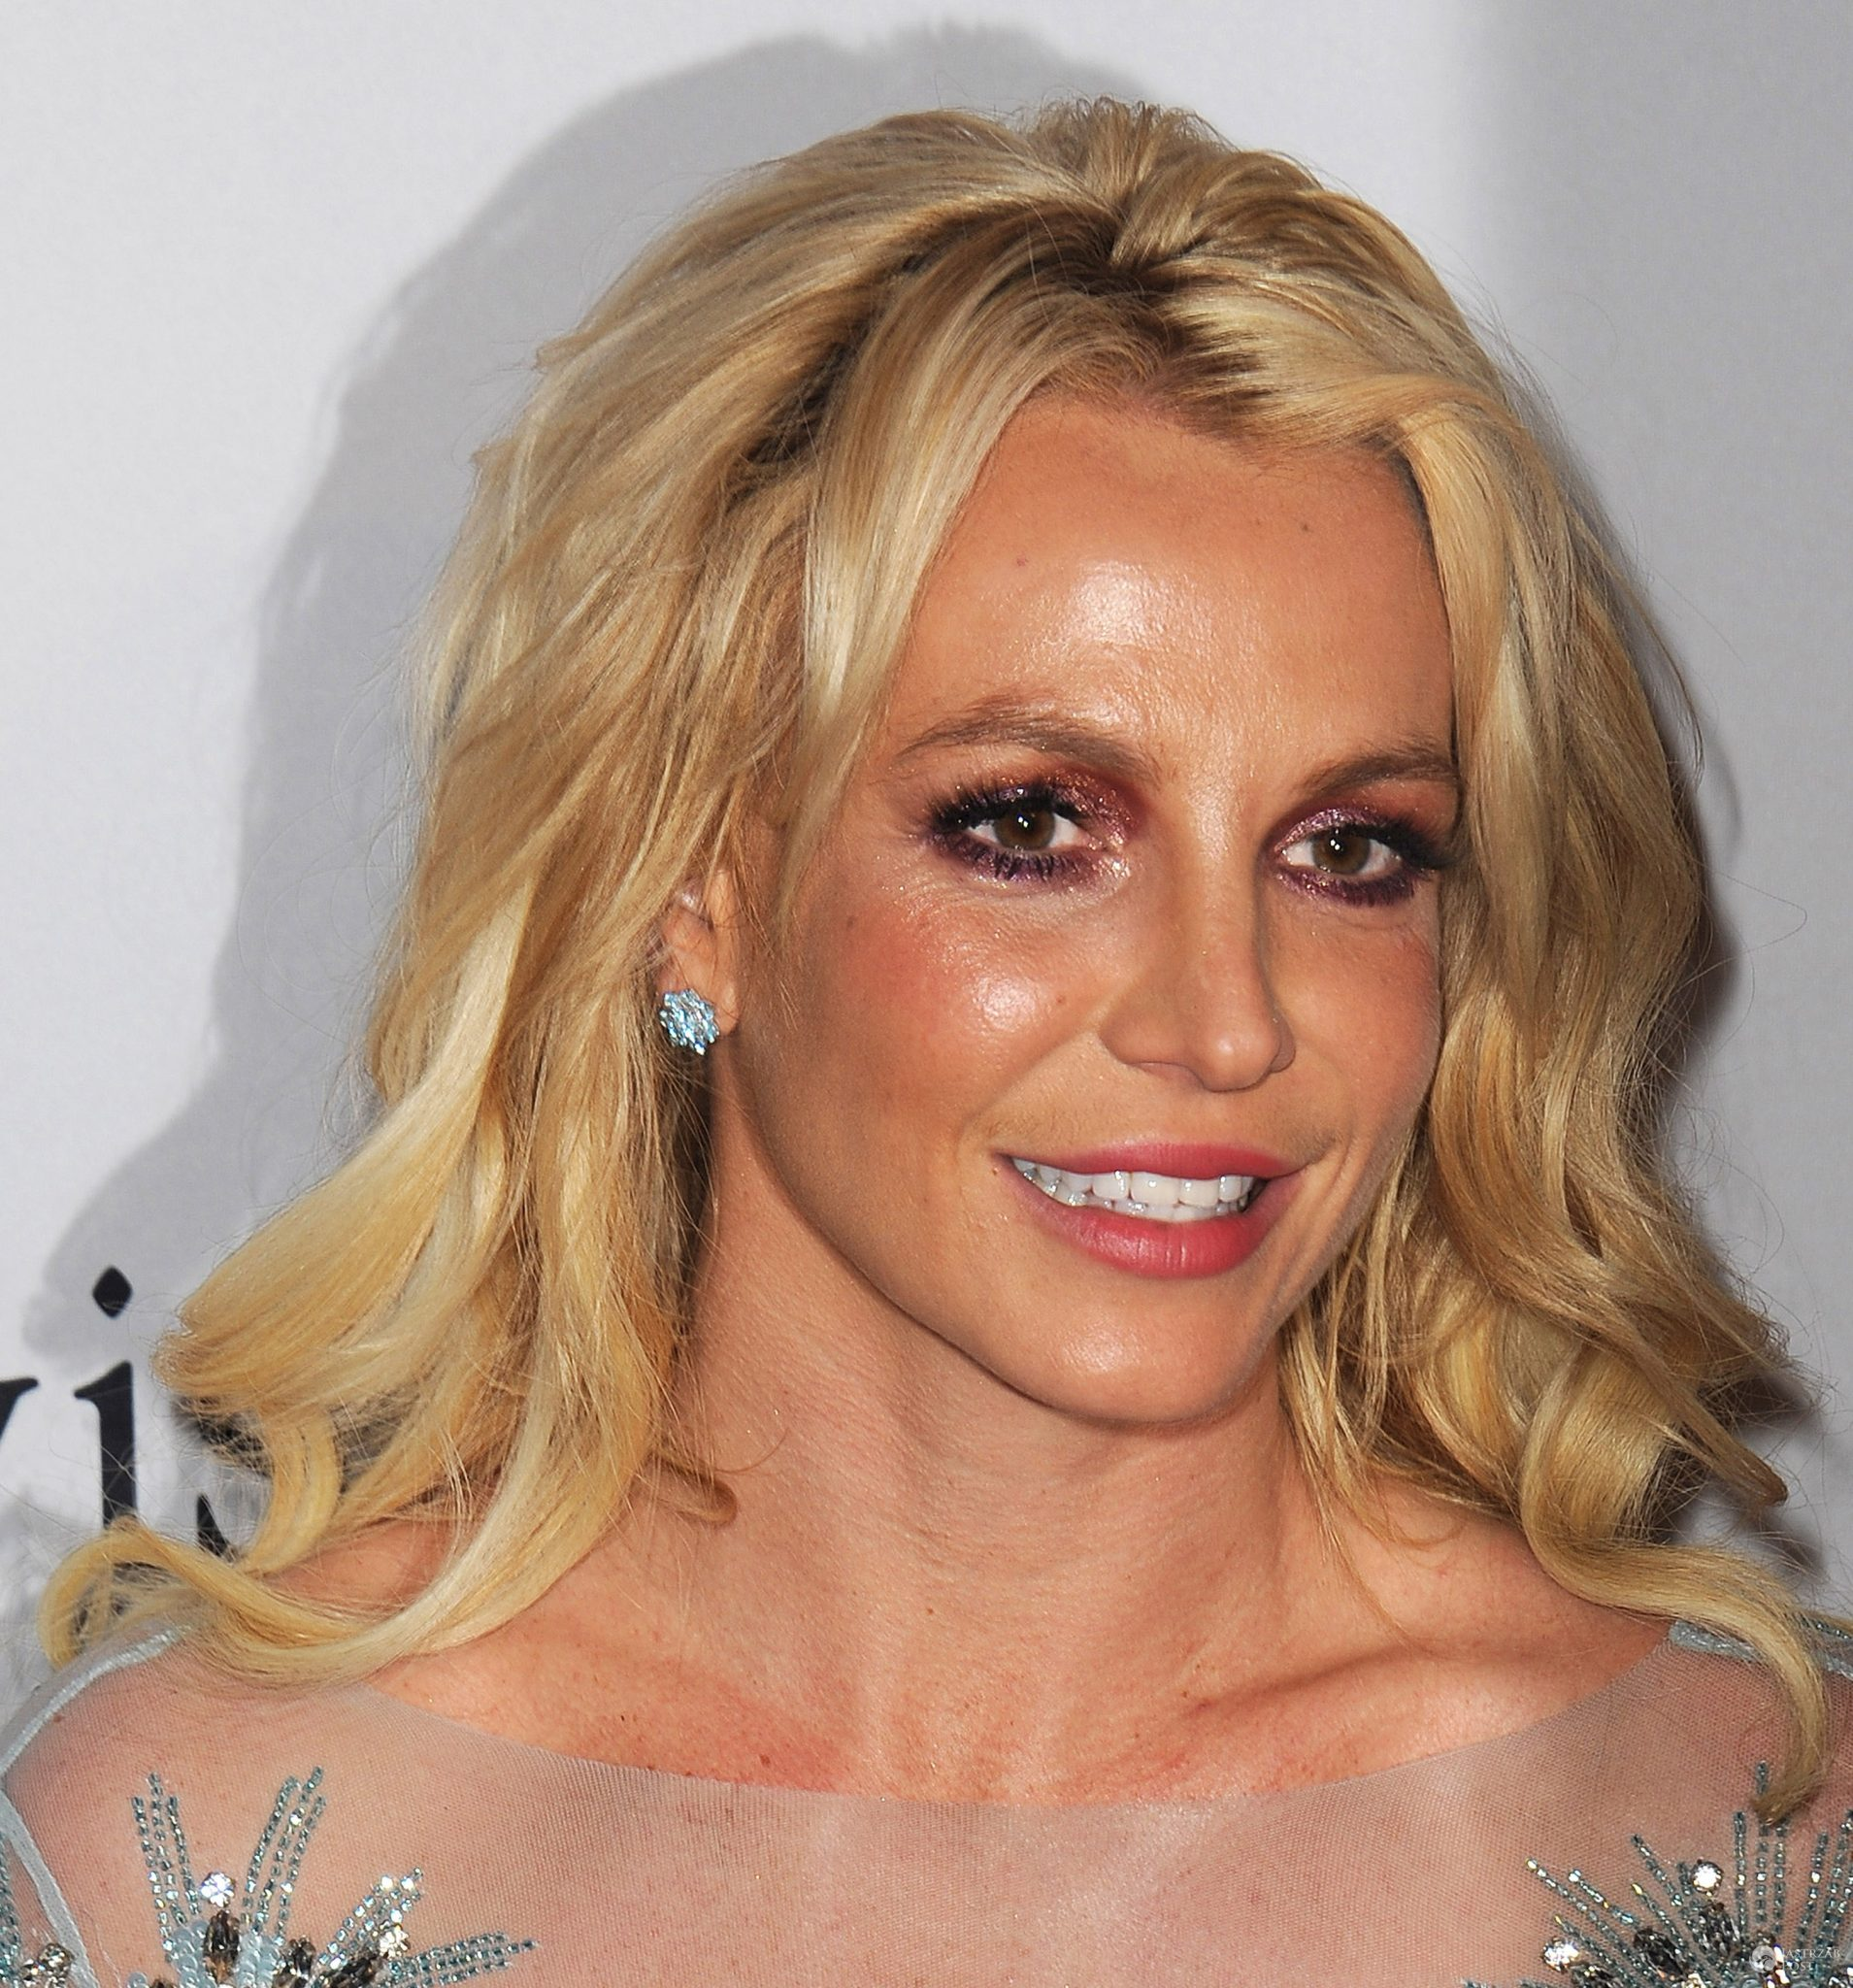 why britney spears is the best 10 reasons why britney spears' 'britney' album is the peak of her career although 'britney' wasn't the singer's most successful album, we can all agree this britney spears era was undoubtedly the best.